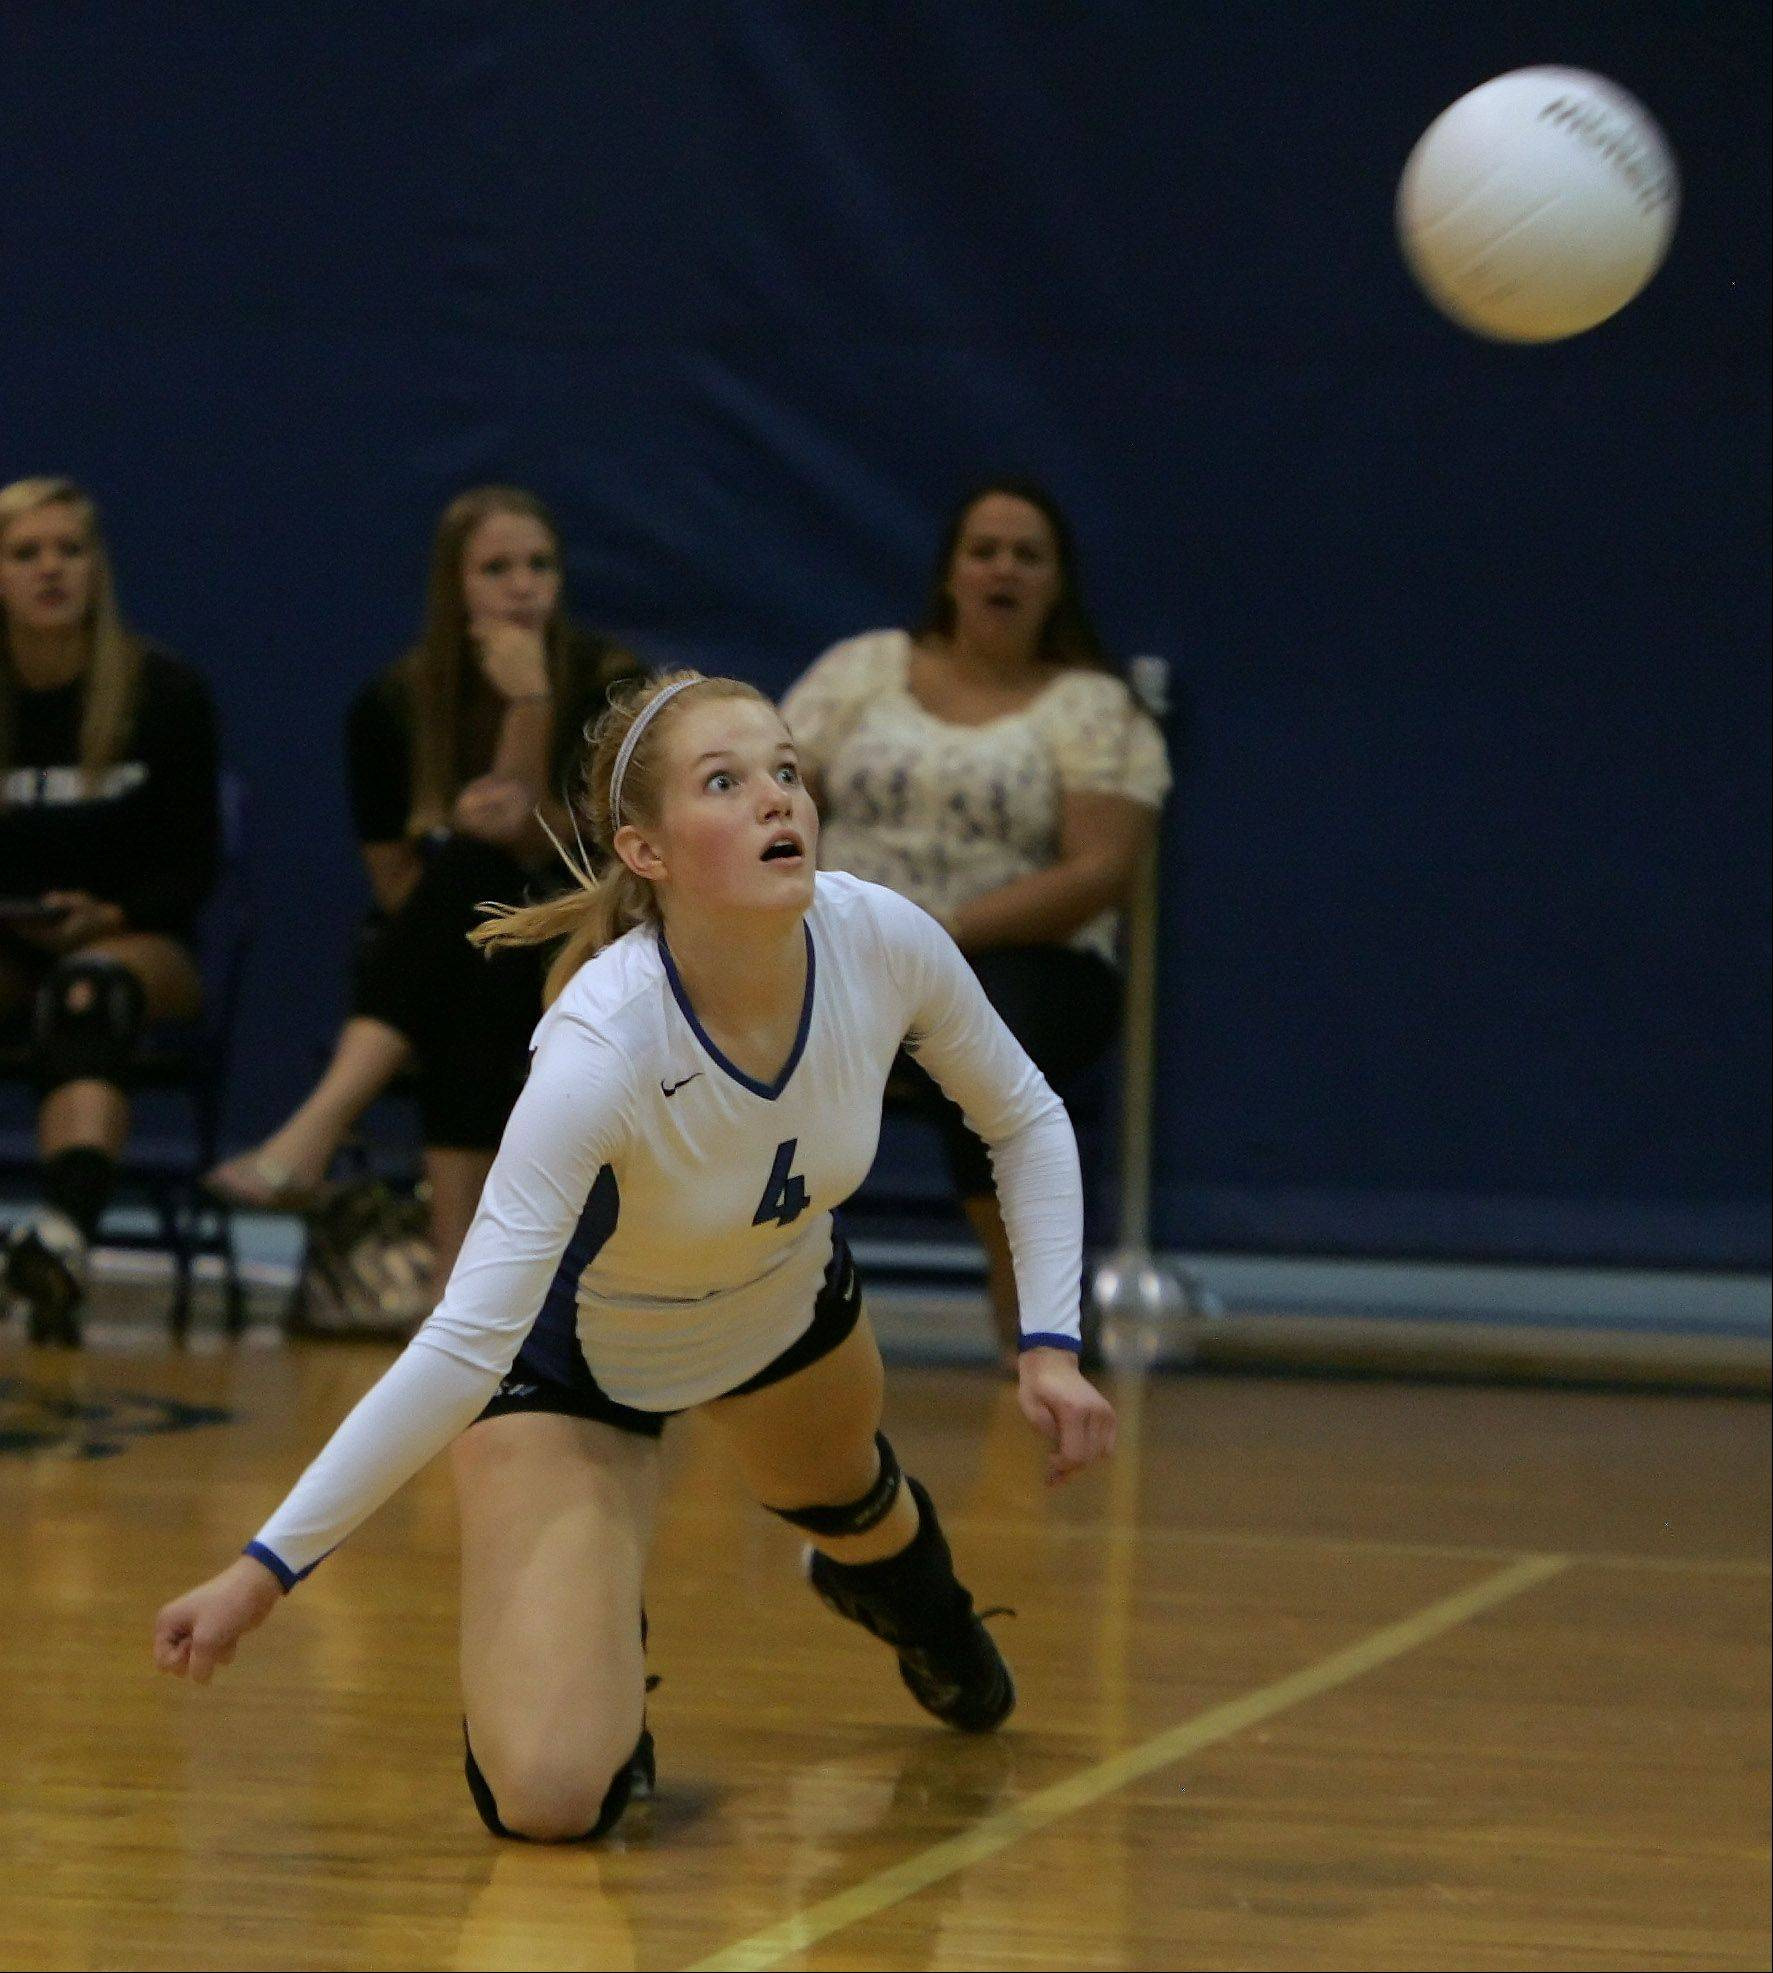 Lake Zurich player Kiley McPeek dives for the ball against visiting Prairie Ridge on Tuesday.